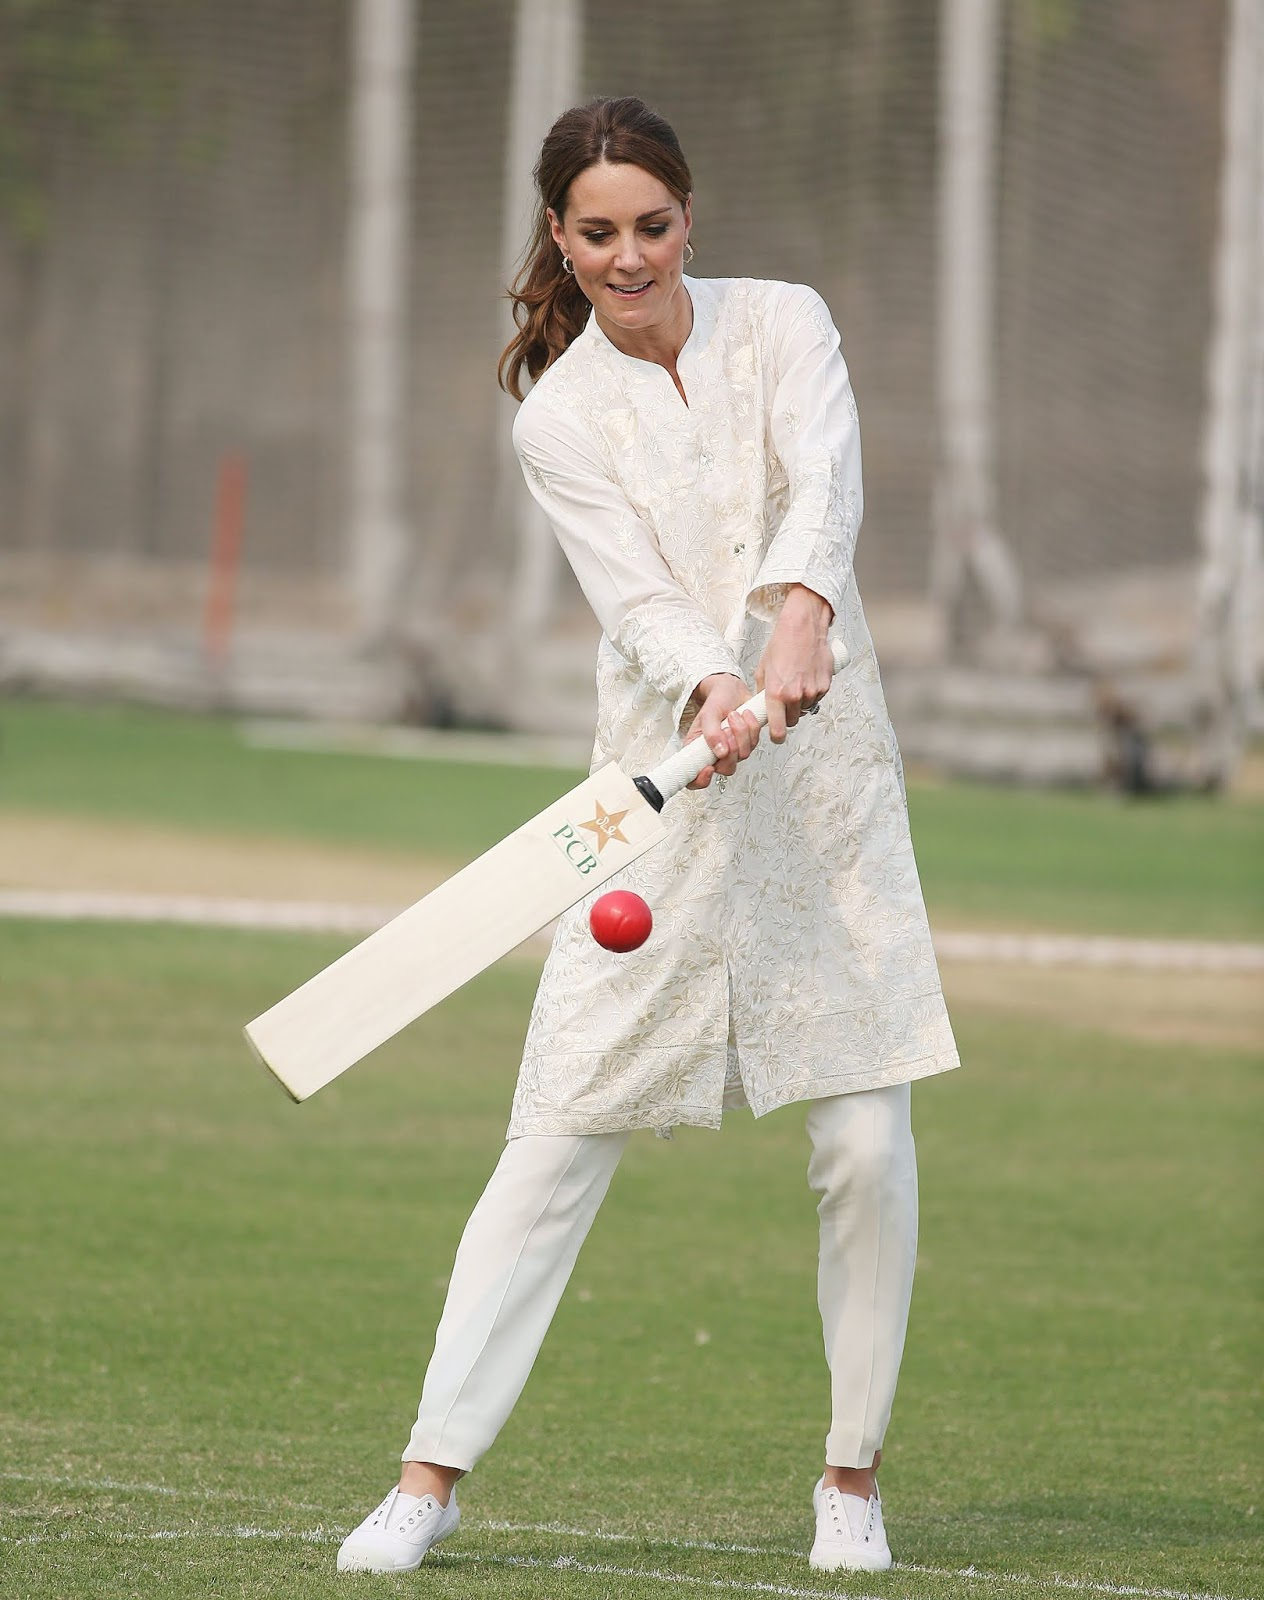 Britain's Prince William and Duchess of Cambridge Kate Middleton play cricket at the National Cricket academy in Lahore